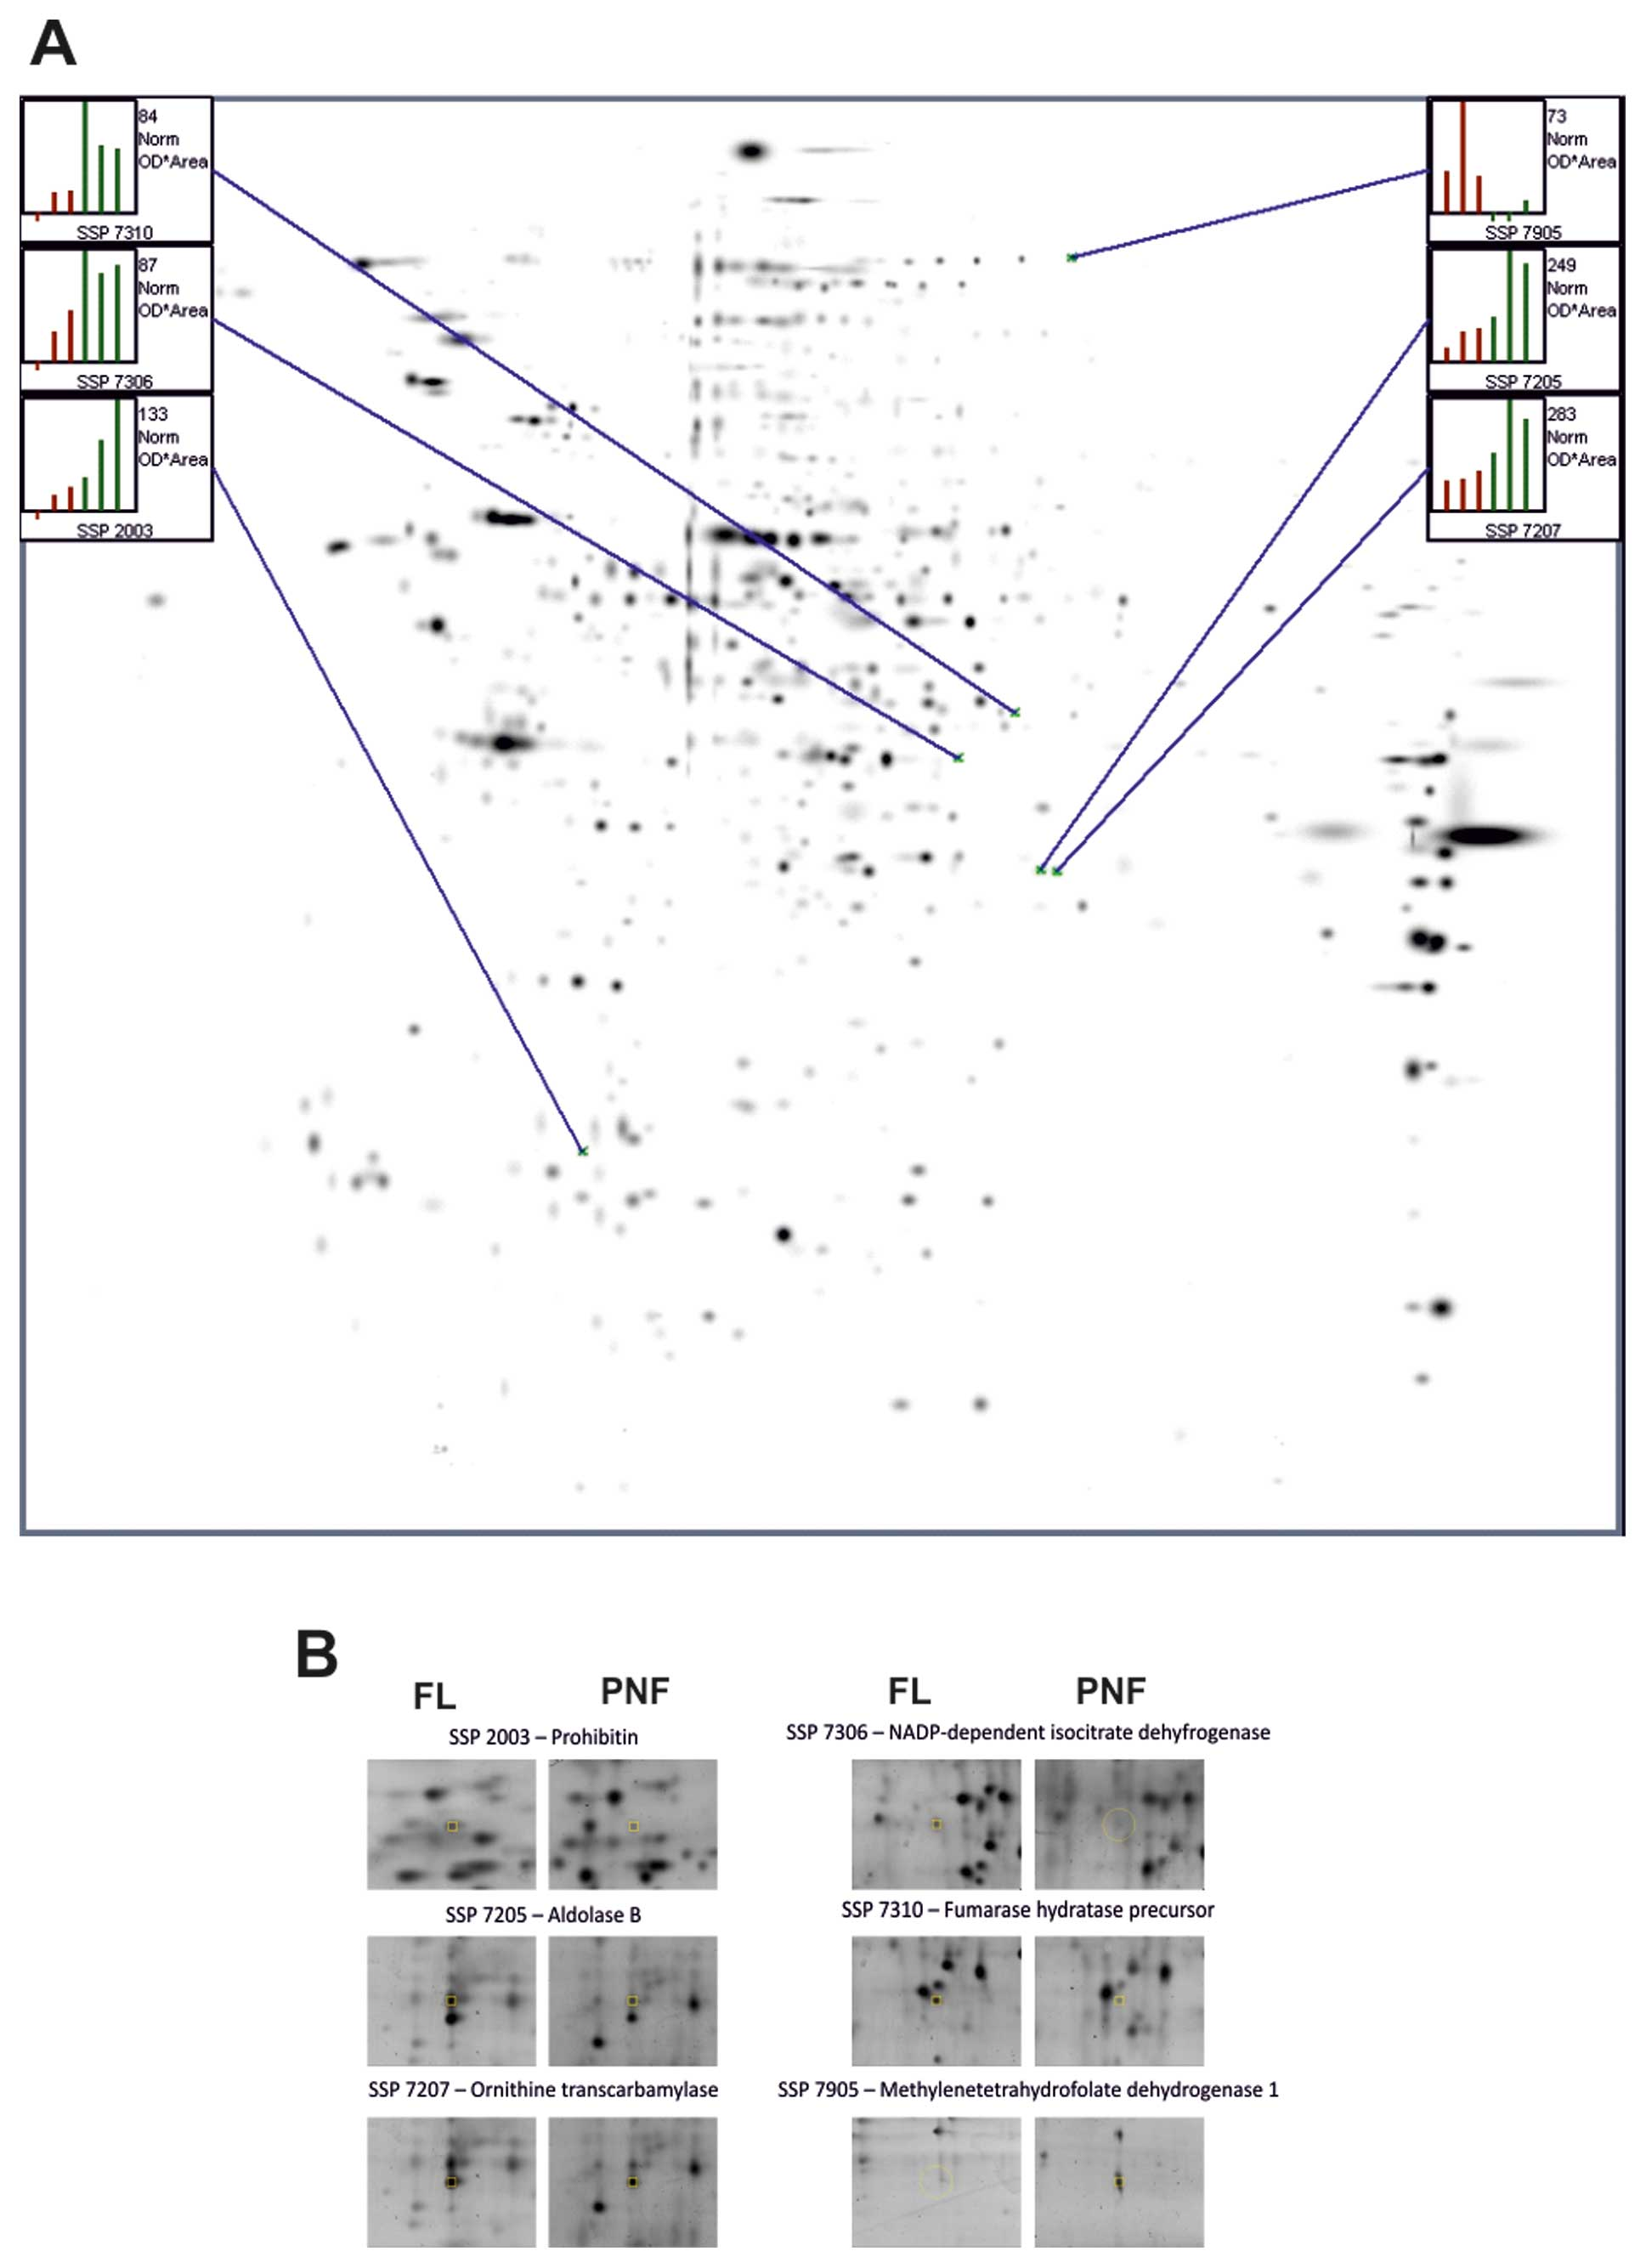 Application Of A Proteomic Approach To Identify Proteins Associated